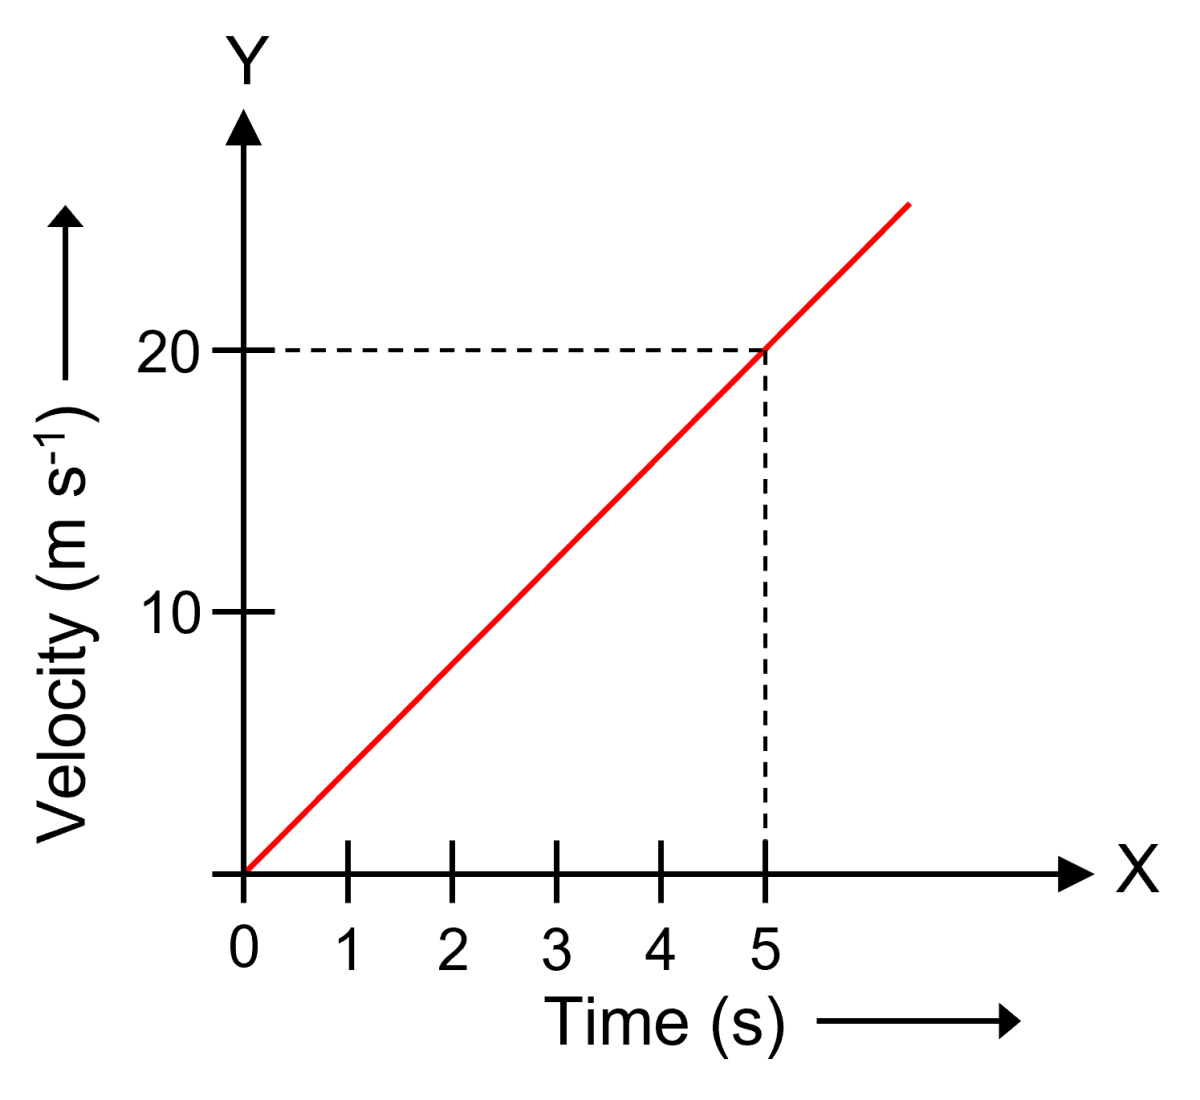 Figure shows the velocity-time graph of a particle of mass 100 g moving in a straight line. Calculate the force acting on the particle. Laws of Motion, Concise Physics Solutions ICSE Class 9.